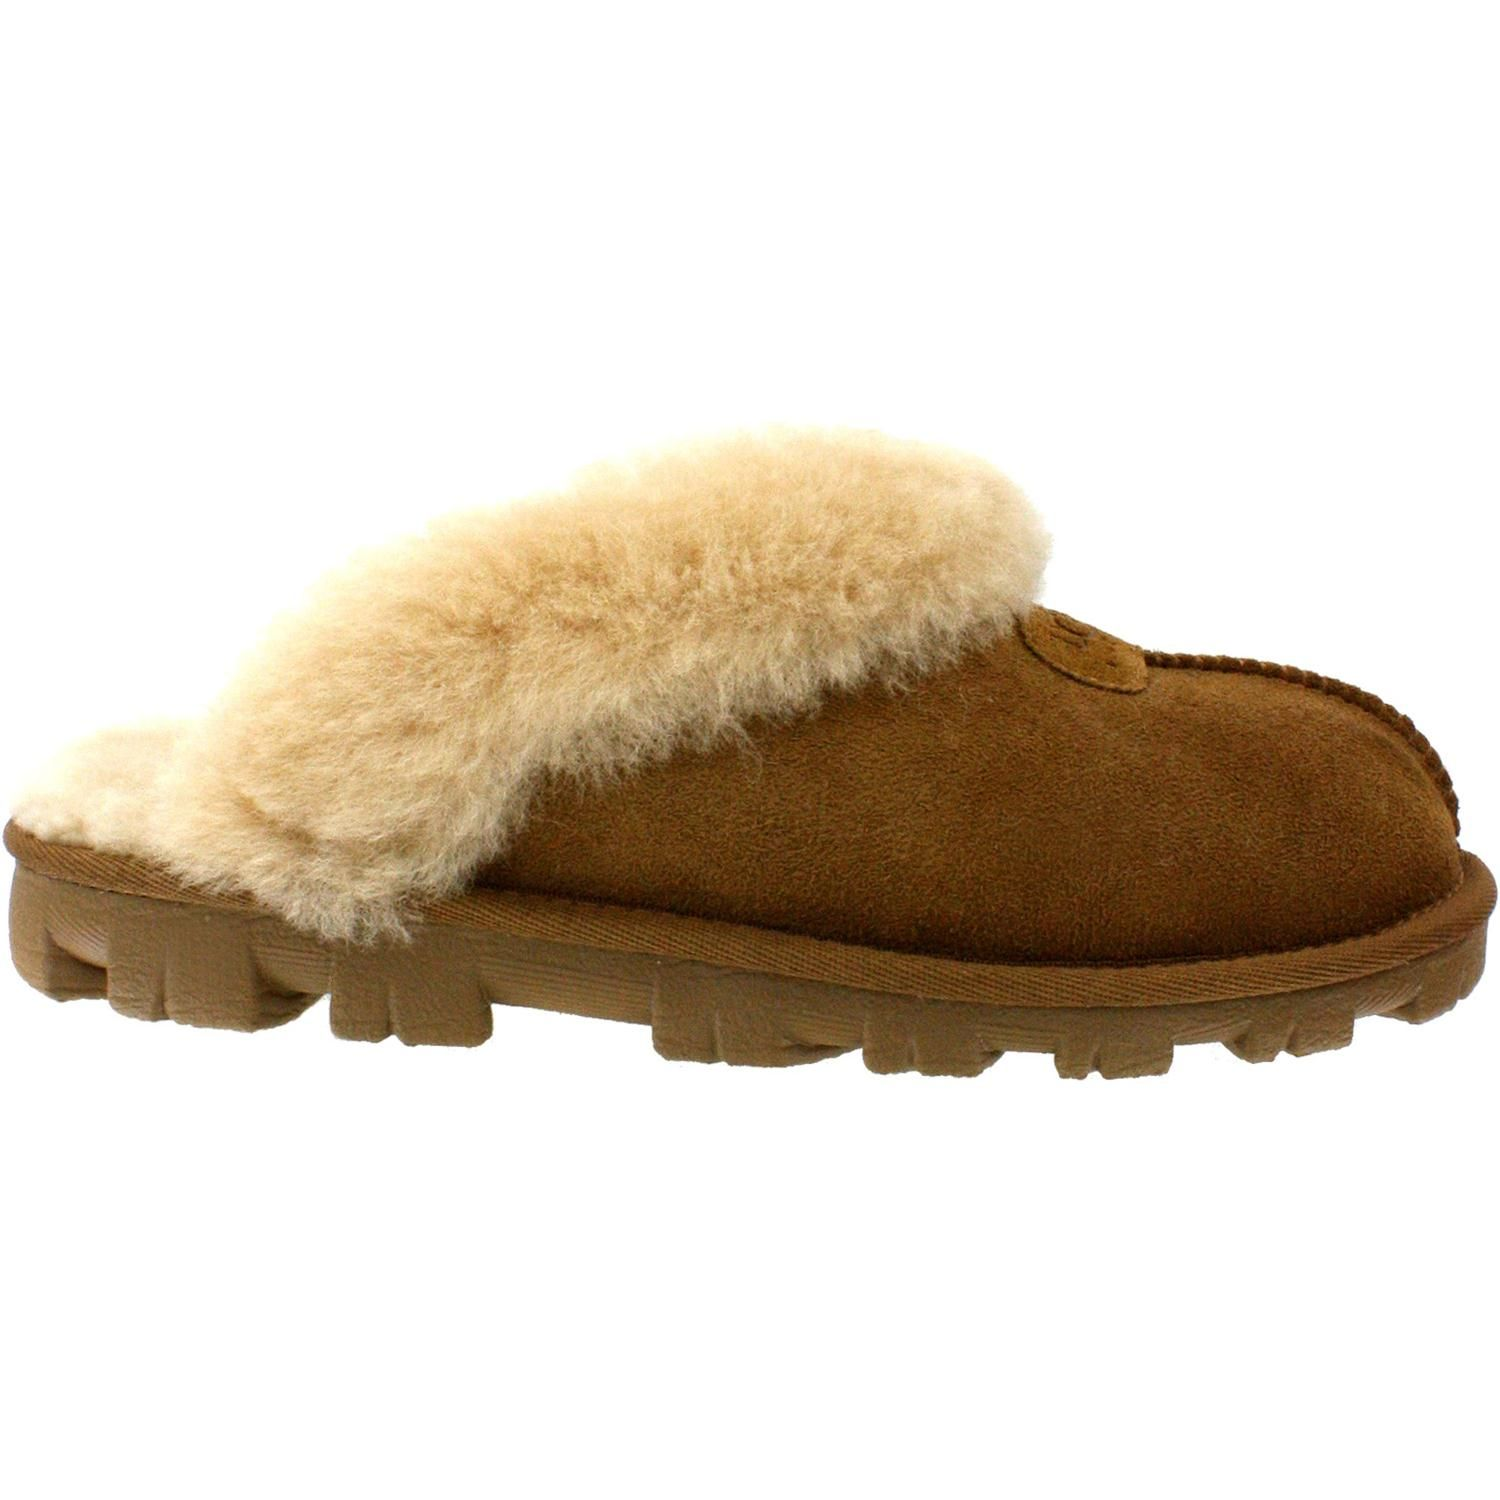 ugg.topsnow-boot.com $85.6-178.99 I love bows my whole life is basically bows. BOWS!!!!